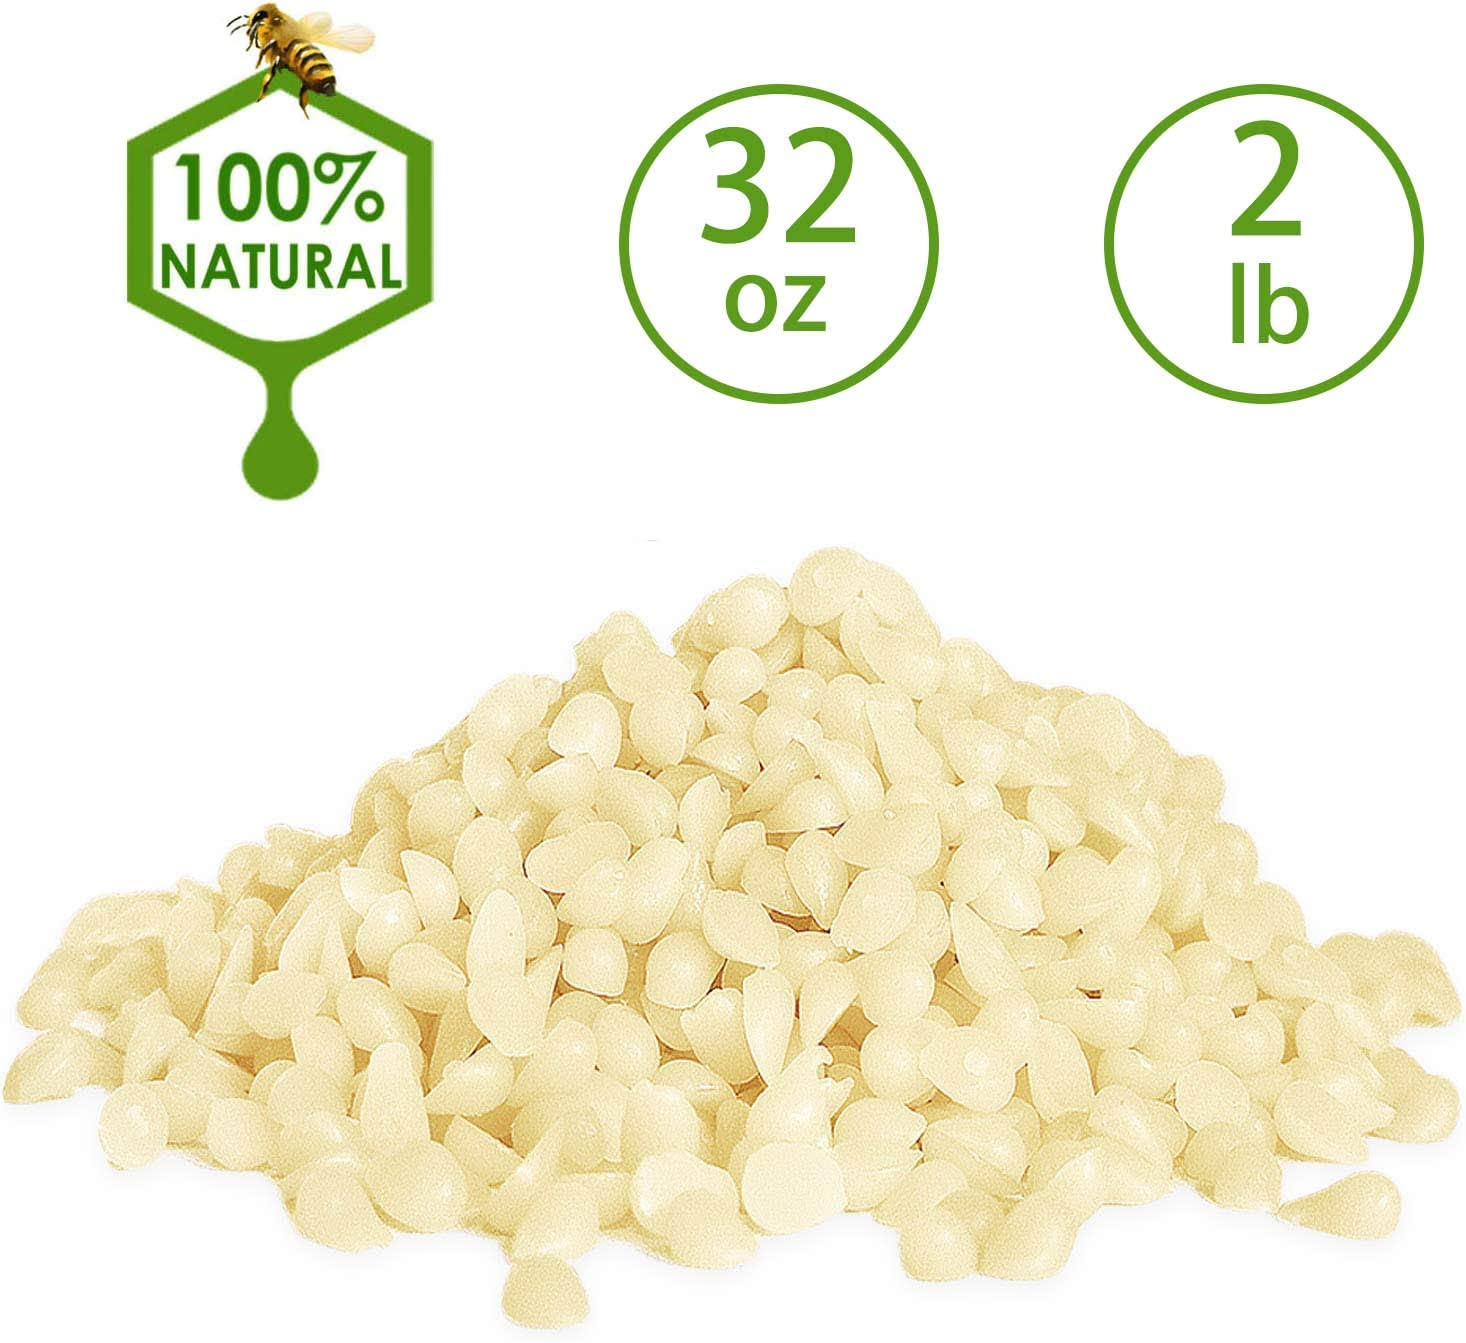 XYUT White Beeswax Pellets 2LB/ 32 oz 100% Pure and Natural Triple Filtered for Skin, Face, Body and Hair Care DIY Creams, Lotions, Lip Balm and Soap Making Supplies